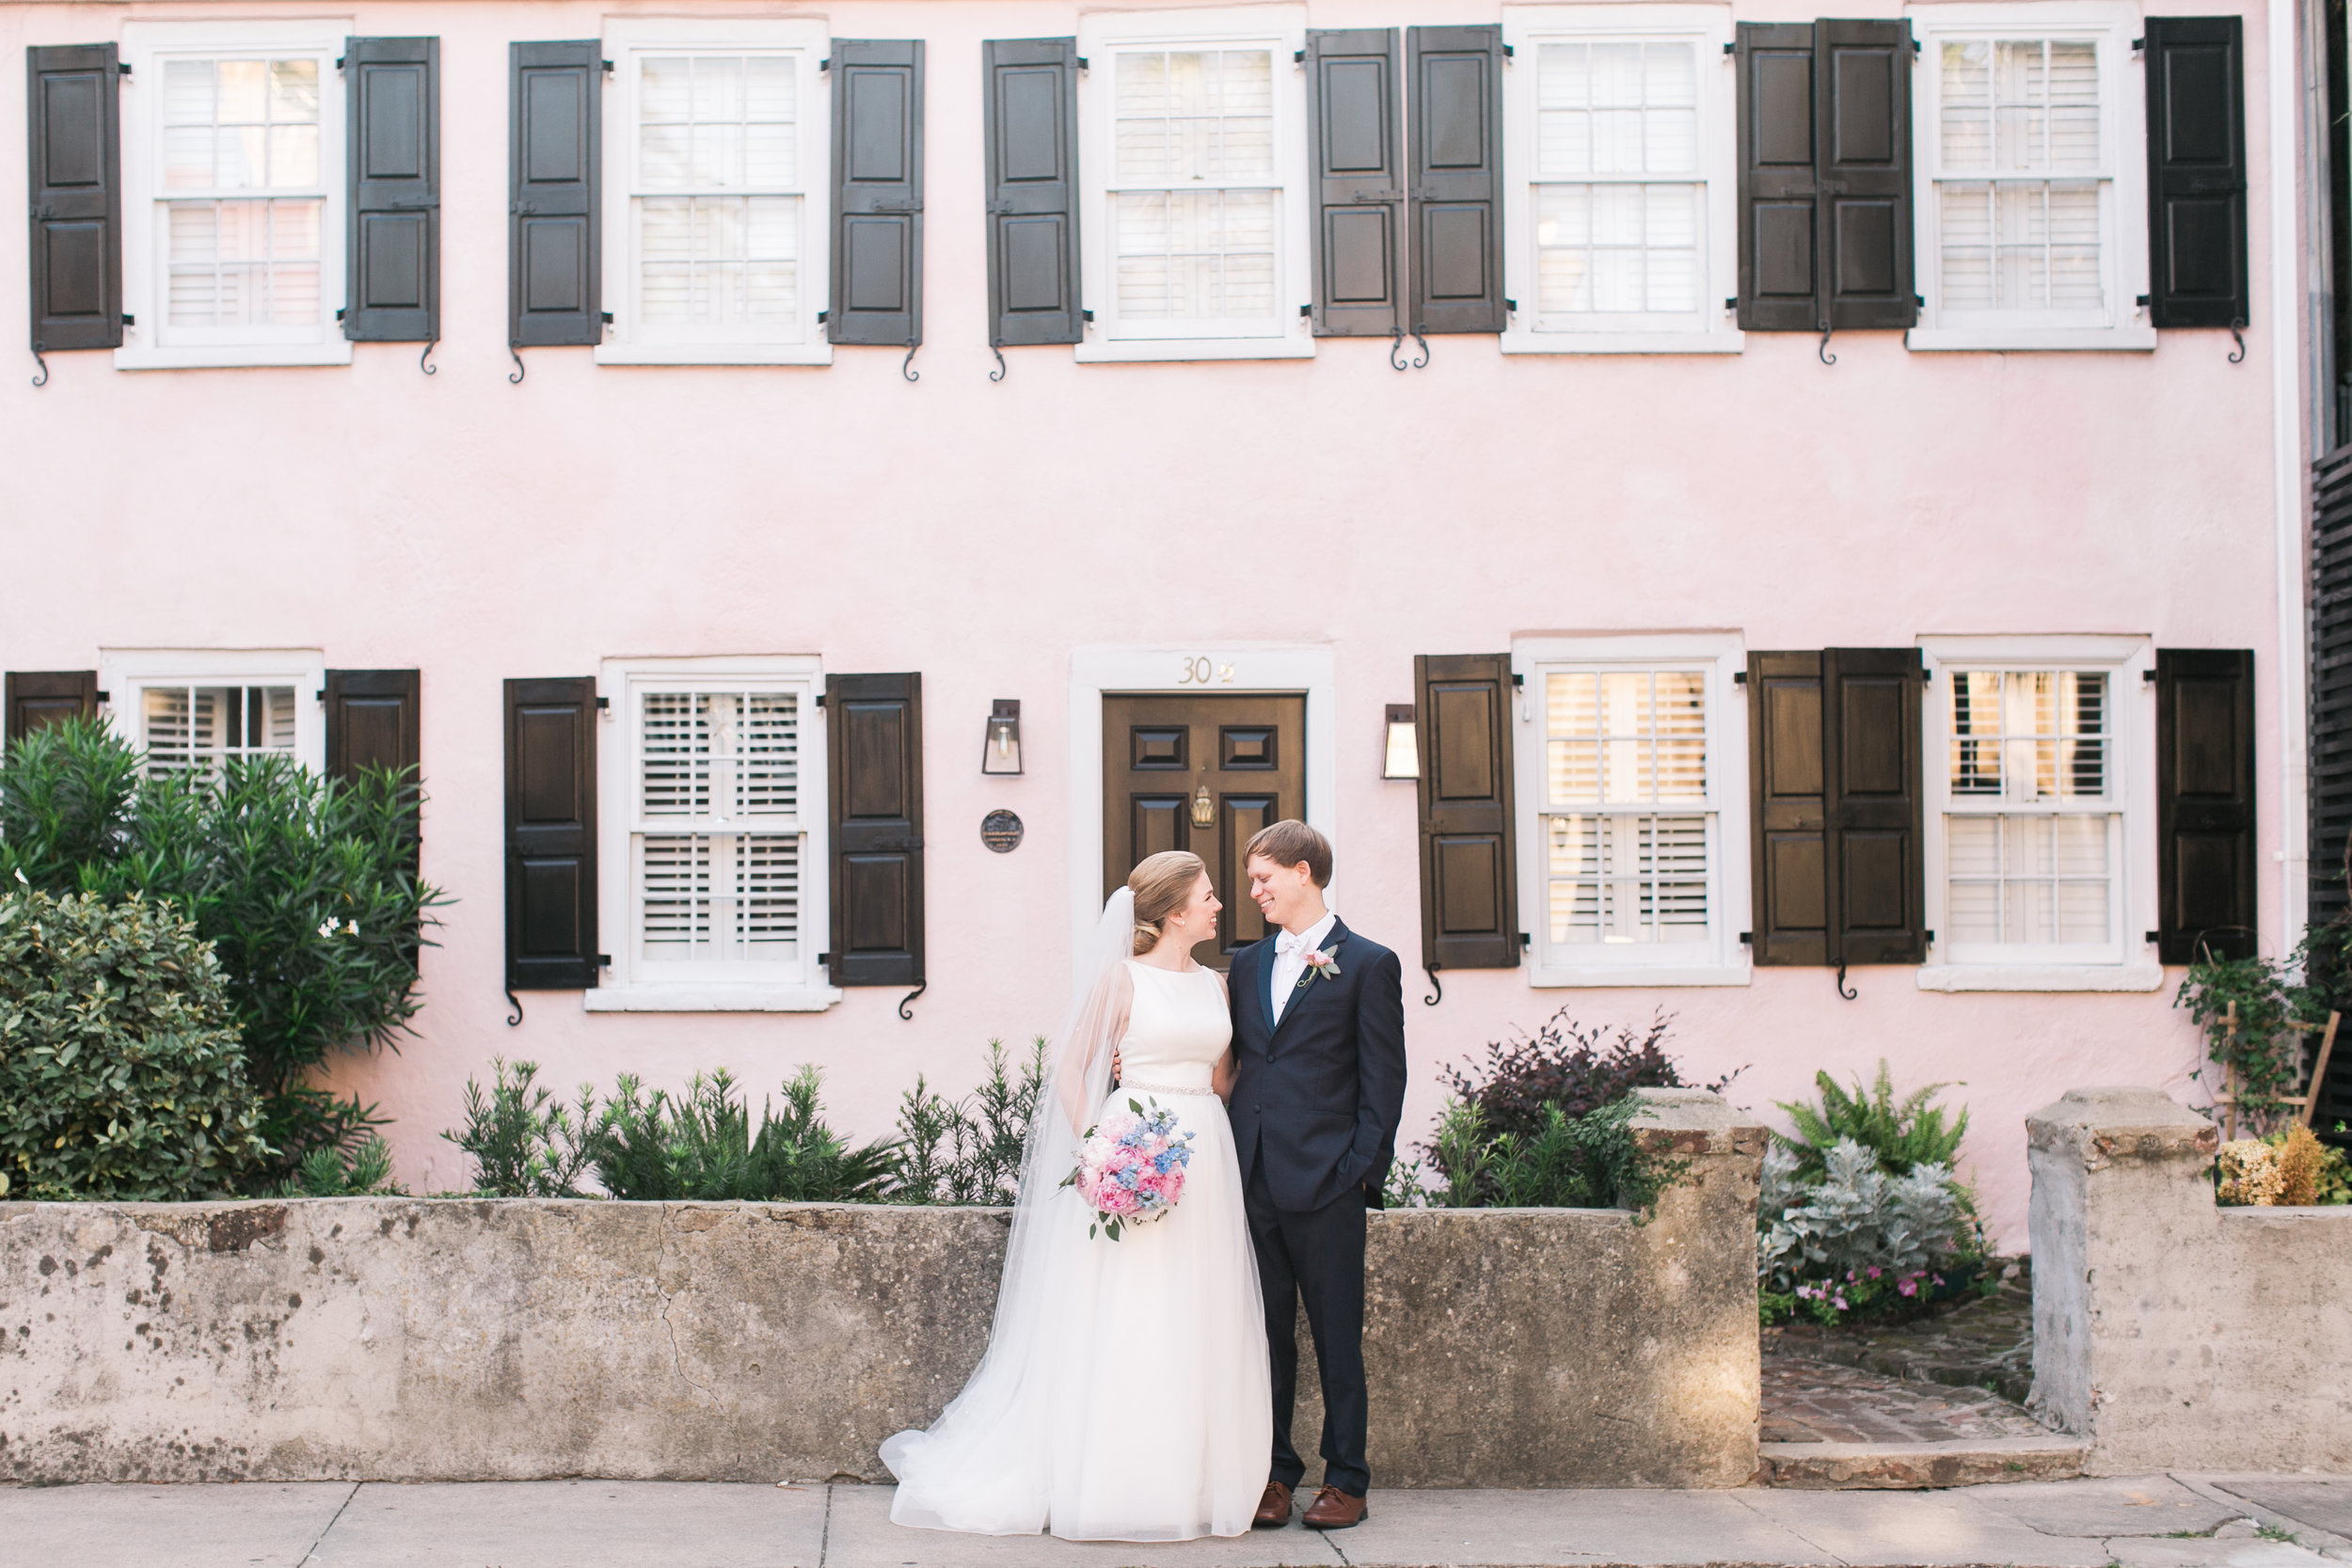 hannah + joseph   Venue:  The Rice Mill  | Planner:  Kirsten Nappi  | Photography:  Meredith Jamison  | Florals:  Anna Bella Florals